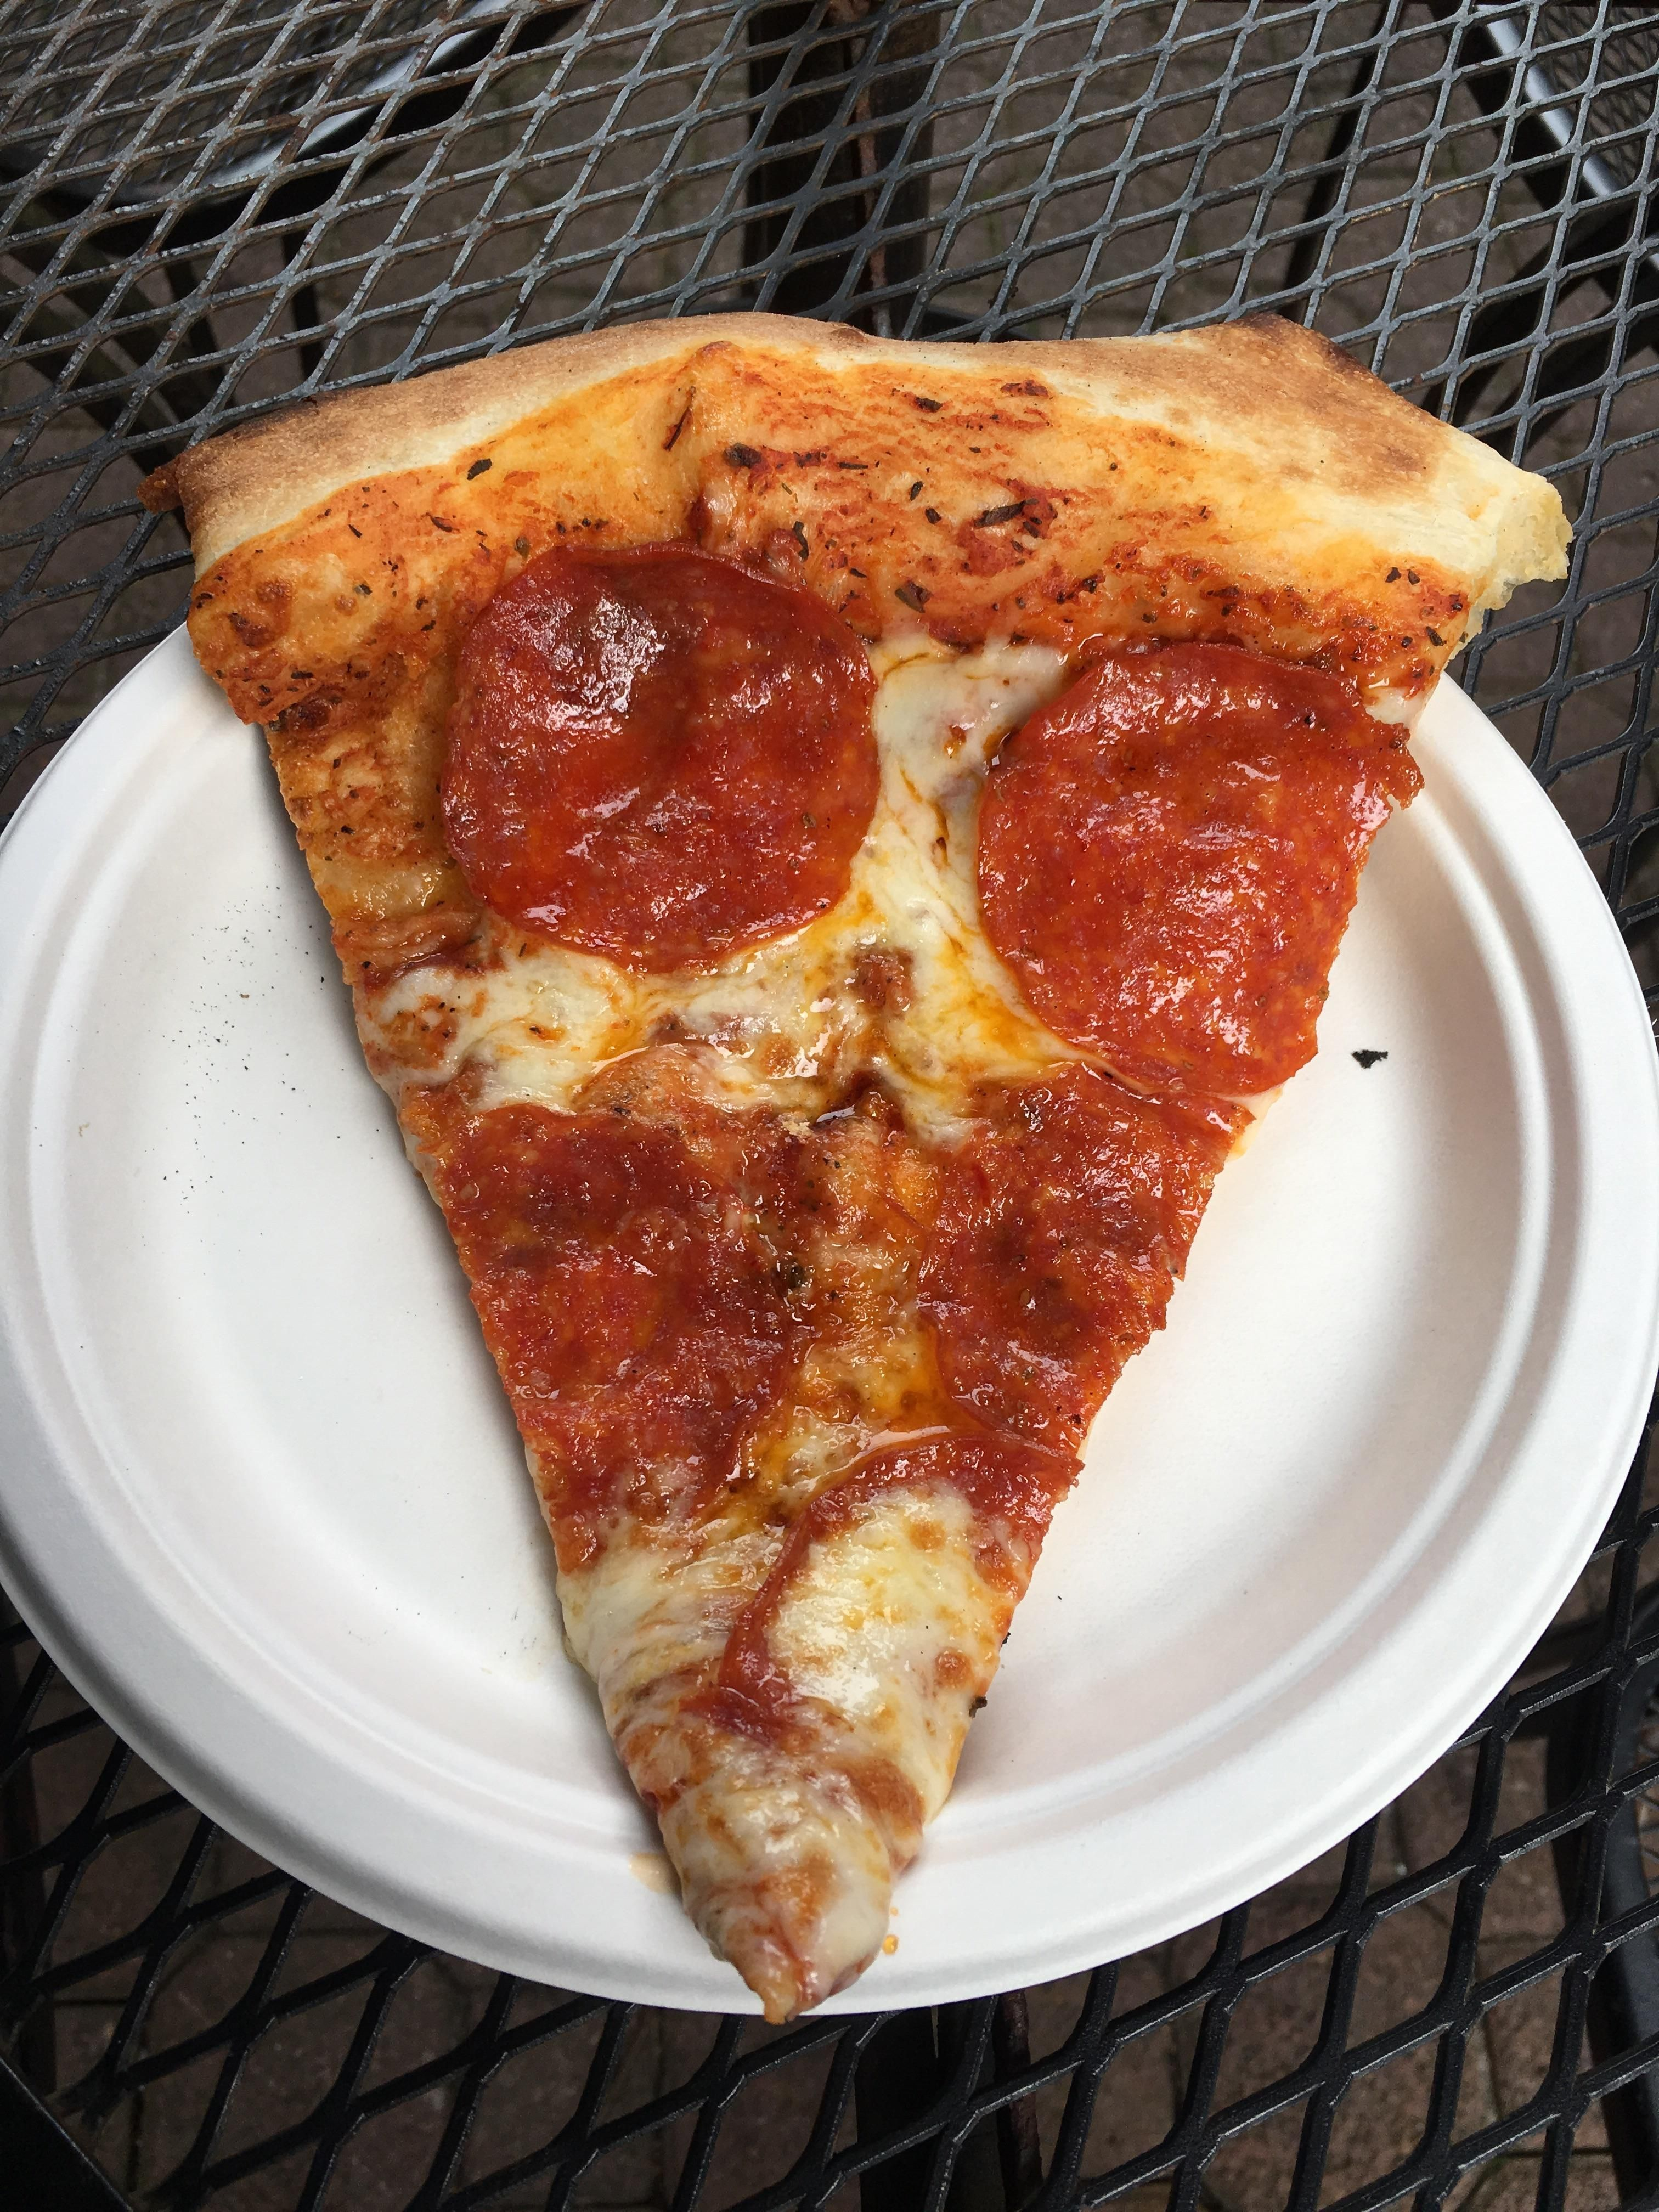 A delicious slice of Pepperoni from Pizza a' Fetta in Cannon Beach OR #pizza #food #foodporn #yummy #love #dinner #salsa #recipe